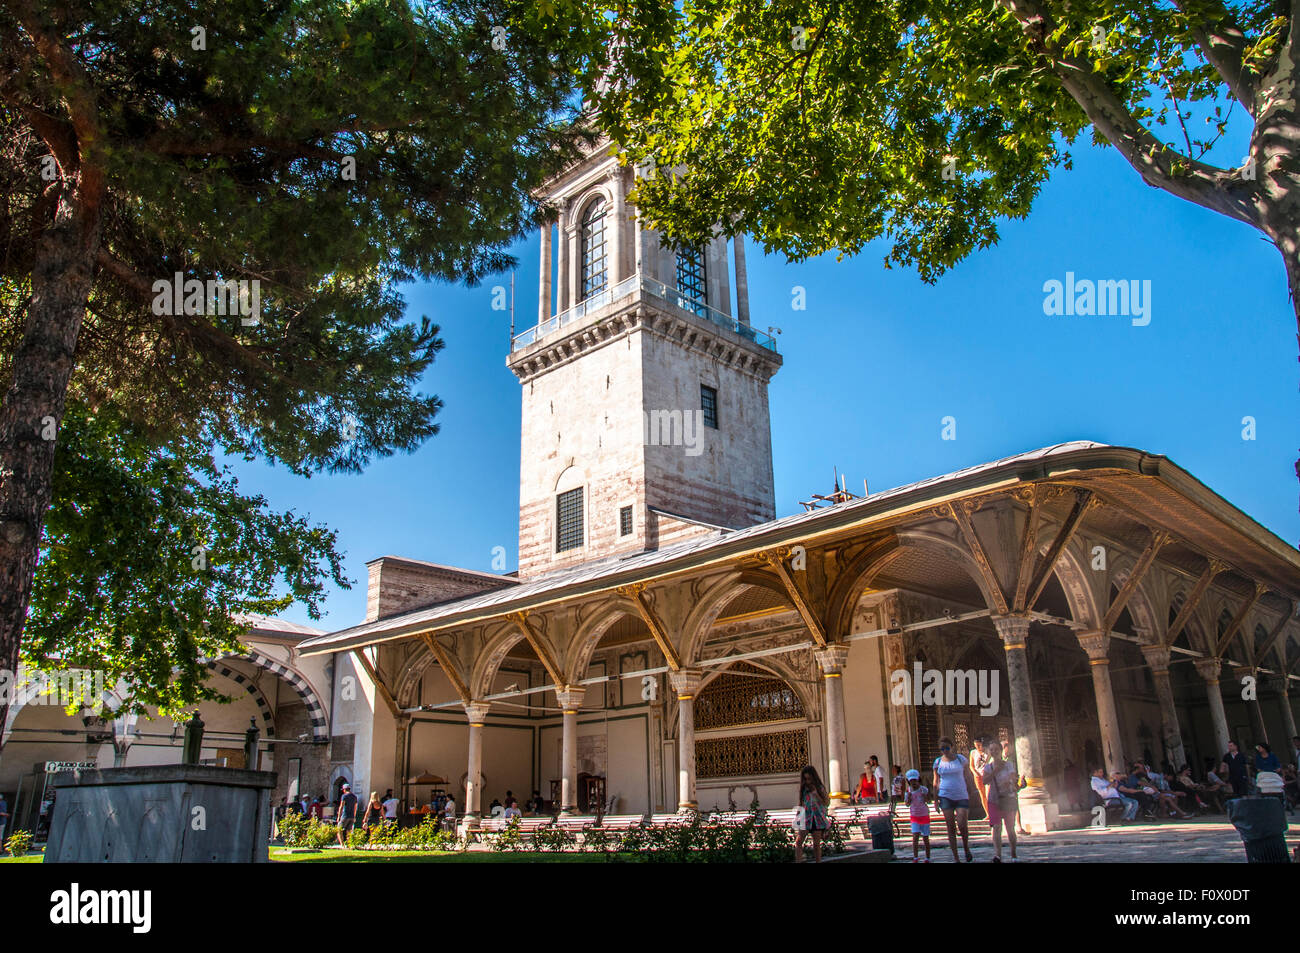 Istanbul, Turkey - August 19, 2015: Tower of Justice in the Second Courtyard of the Topkapi Palace, Istanbul, Turkey. - Stock Image